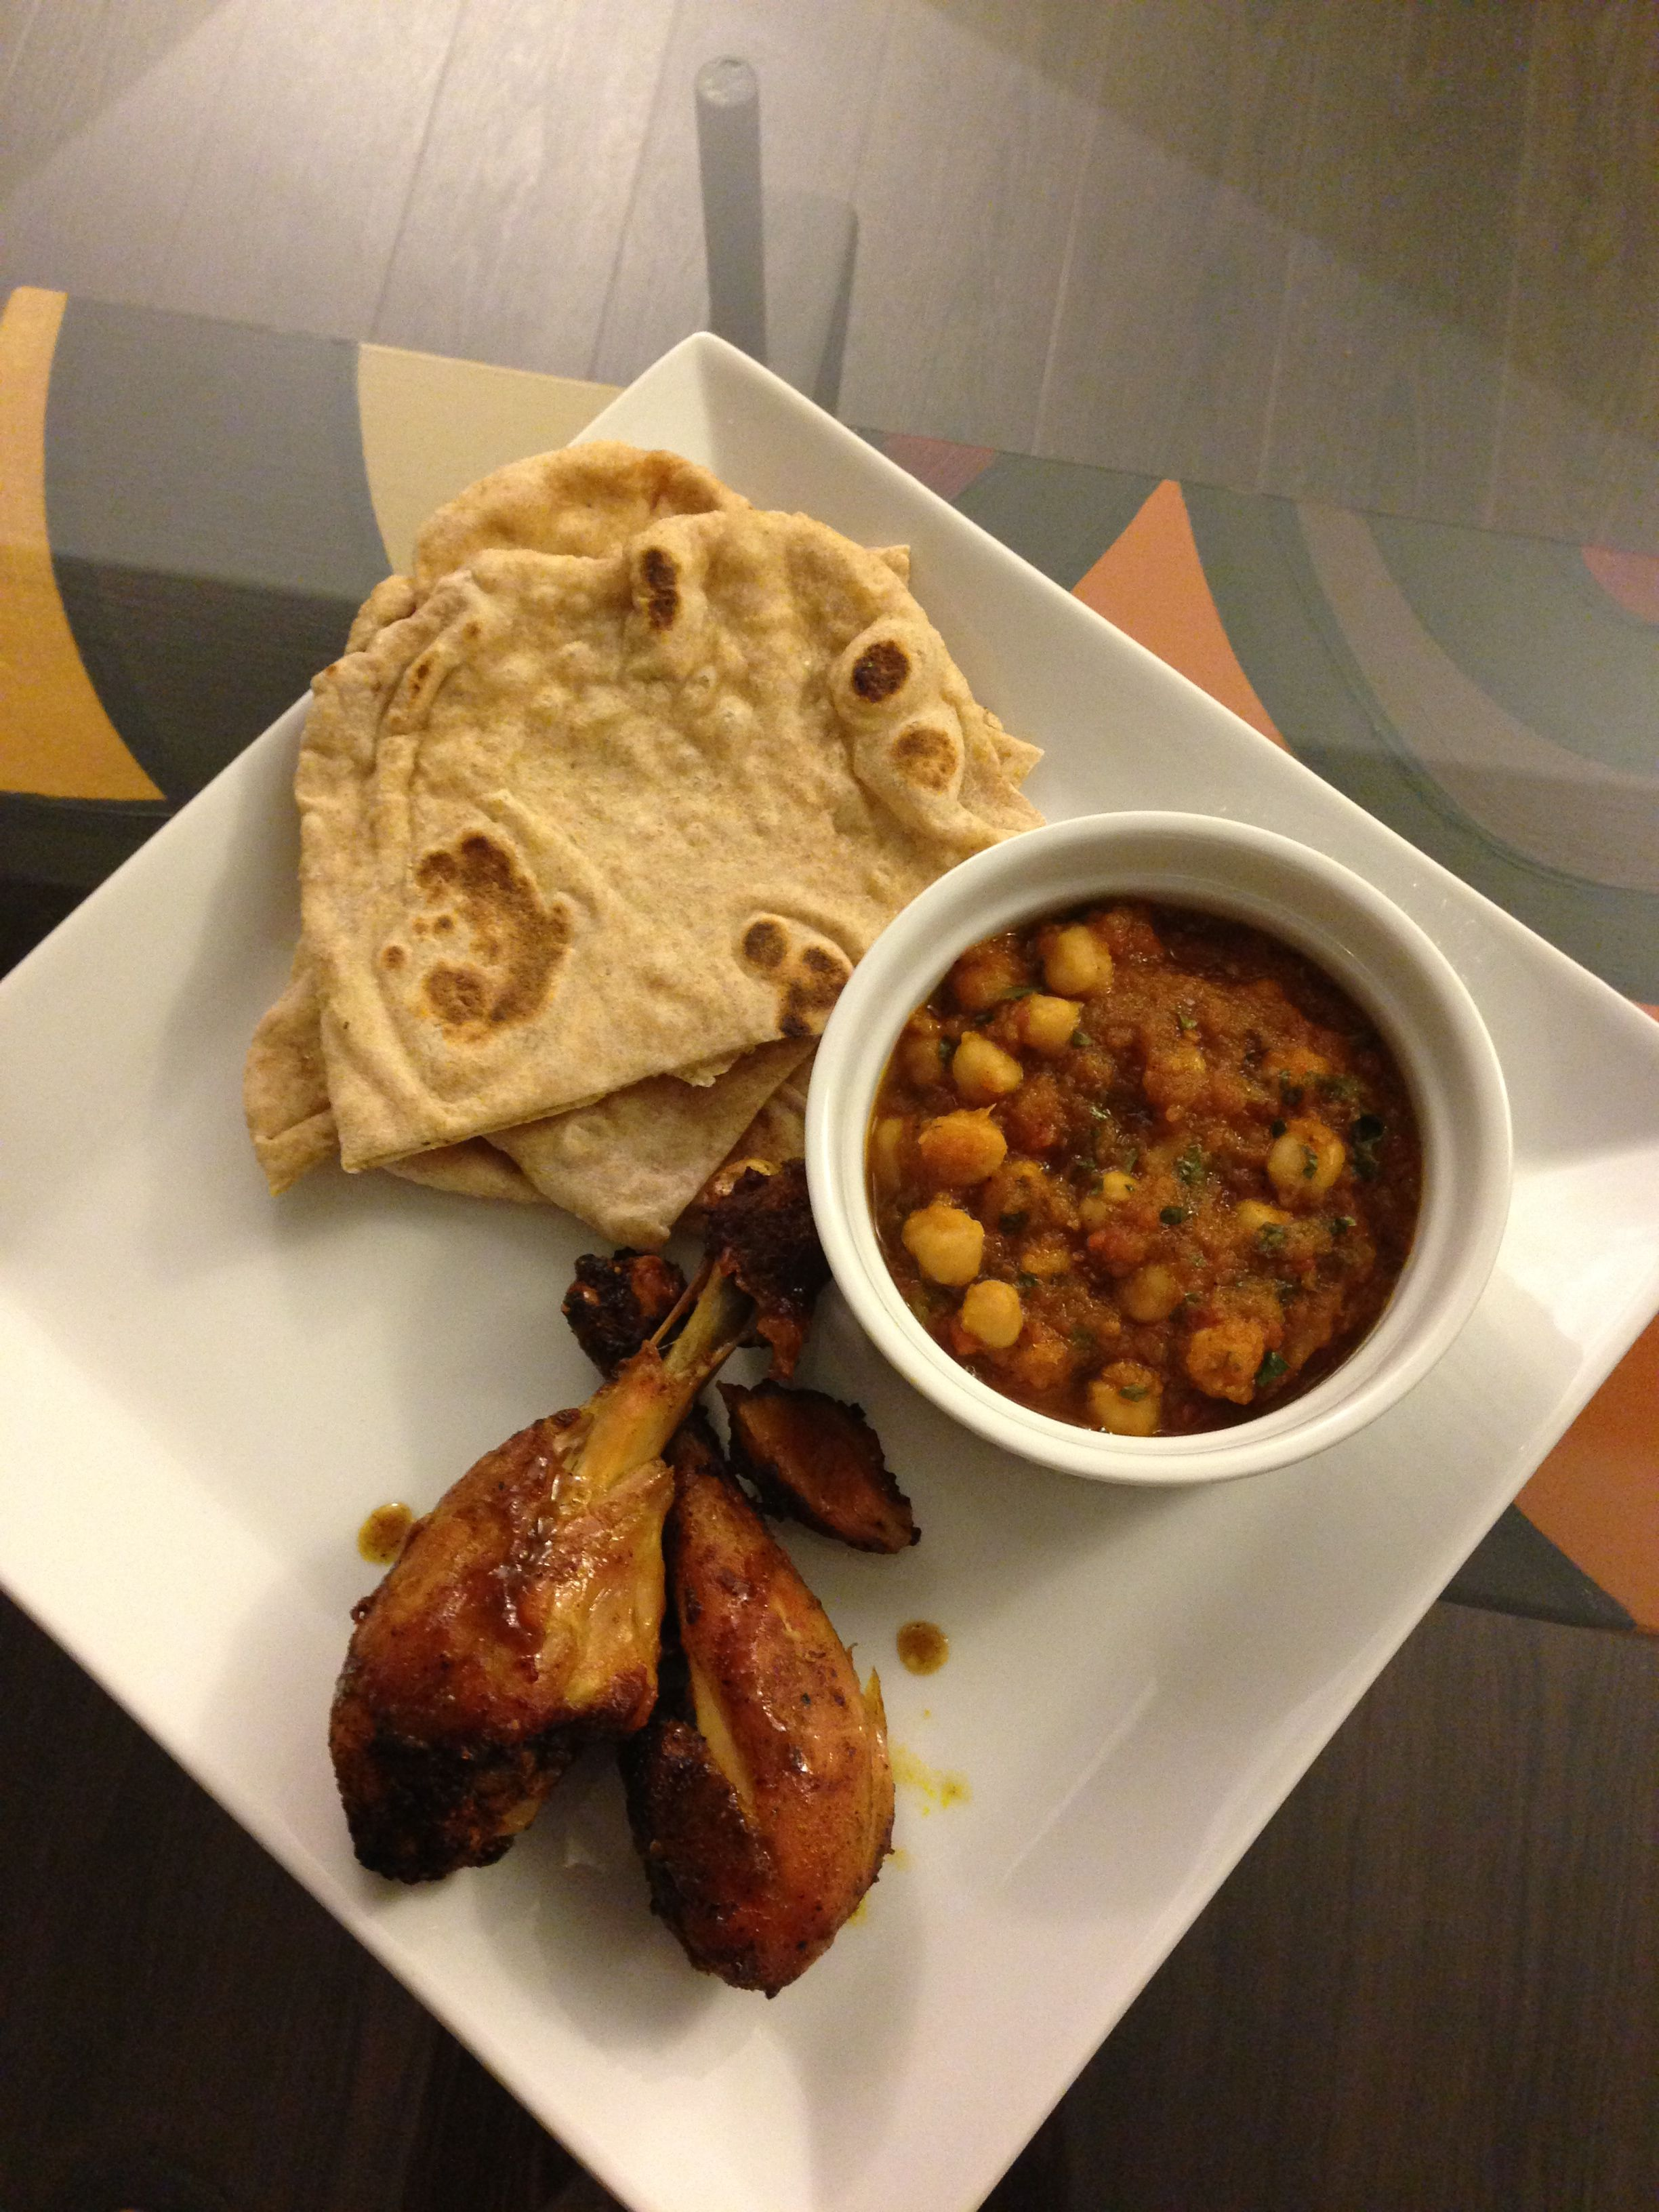 A trip to the east: Chole (Chana Masala), homemade naan and oven broiled curry chicken